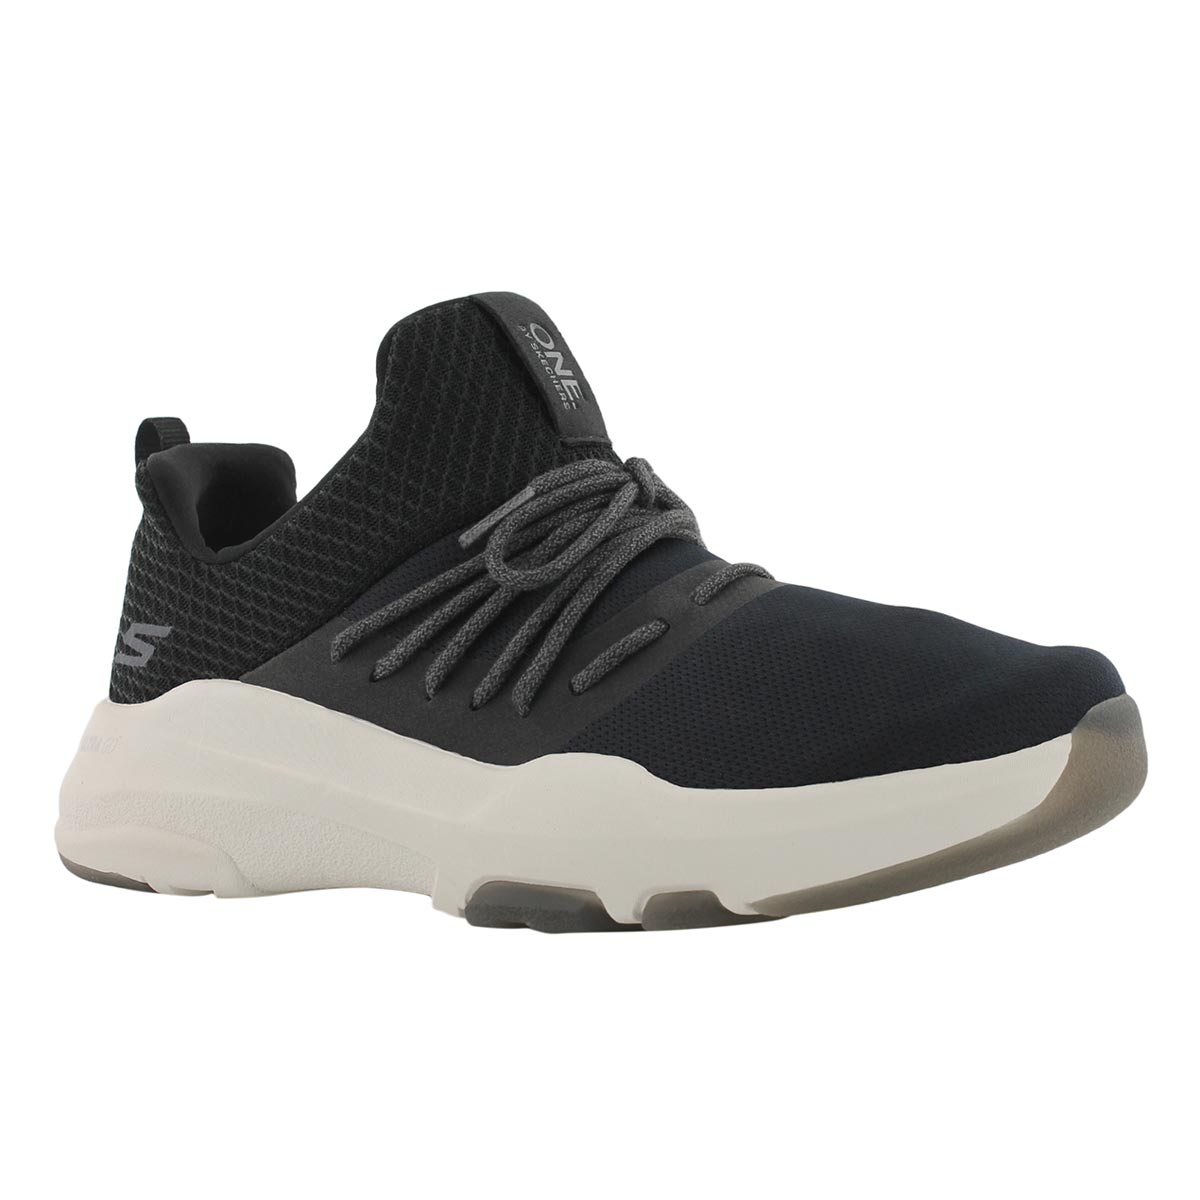 Lds Element Ultra black/white sneaker